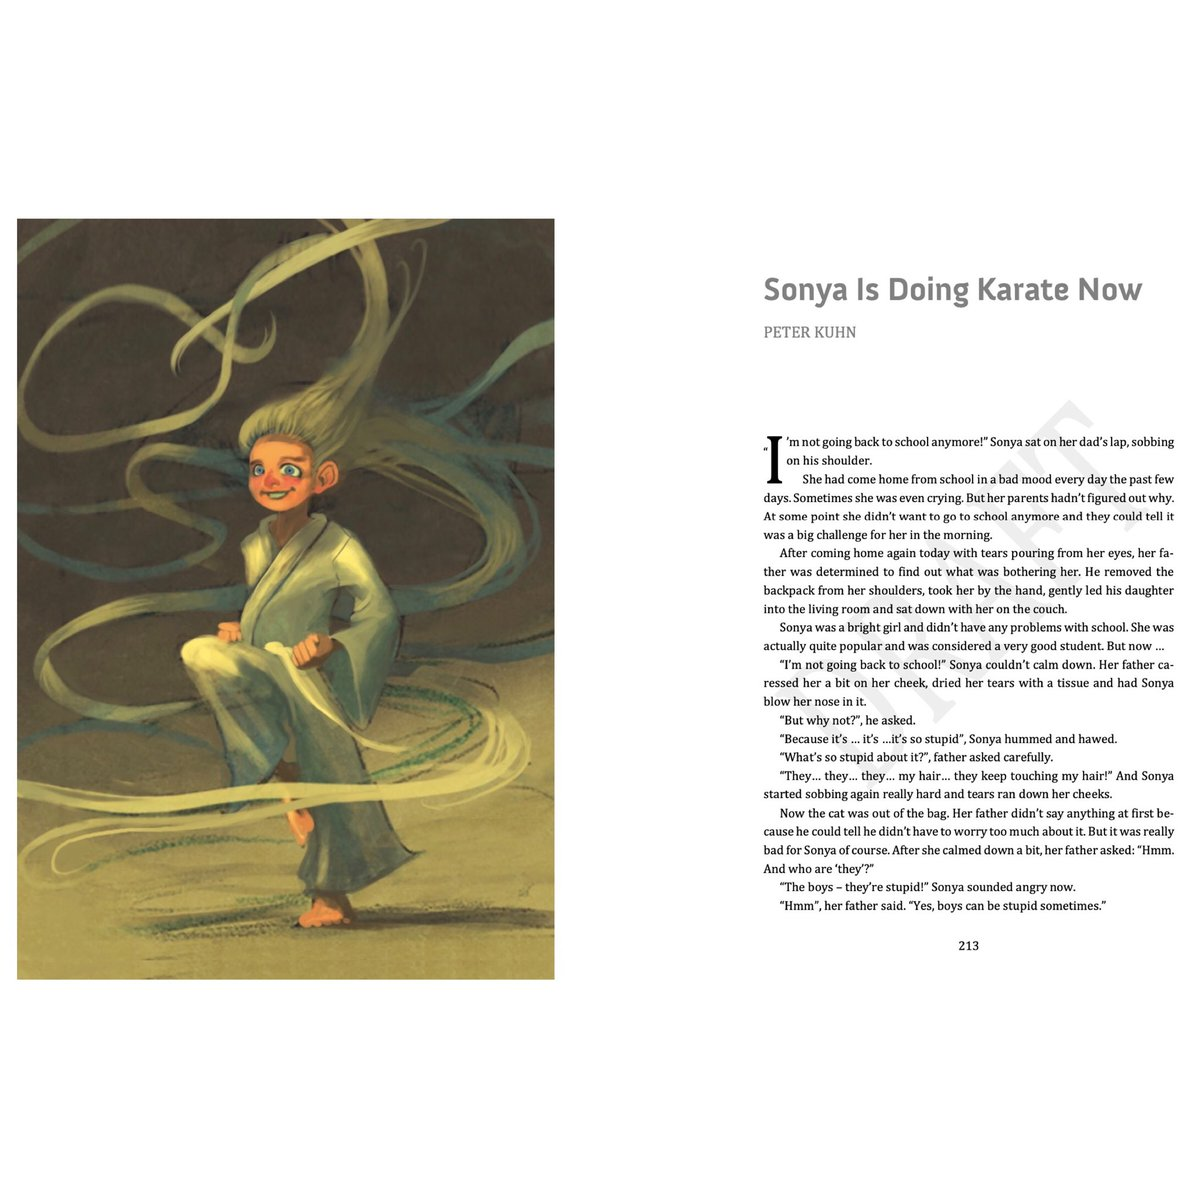 THE STORY THAT STARTED IT ALL Samples from #Dragon and #Tiger — Martial Arts Stories for Children 23 Sonya is Doing Karate Now #childrensbooks #lookingforapublisher @LisaHepho #martialarts #storytelling #karate #karatedo #karatekid #karategirl #dragonandtigerbook #publisherwantedpic.twitter.com/dpcLewUd3I